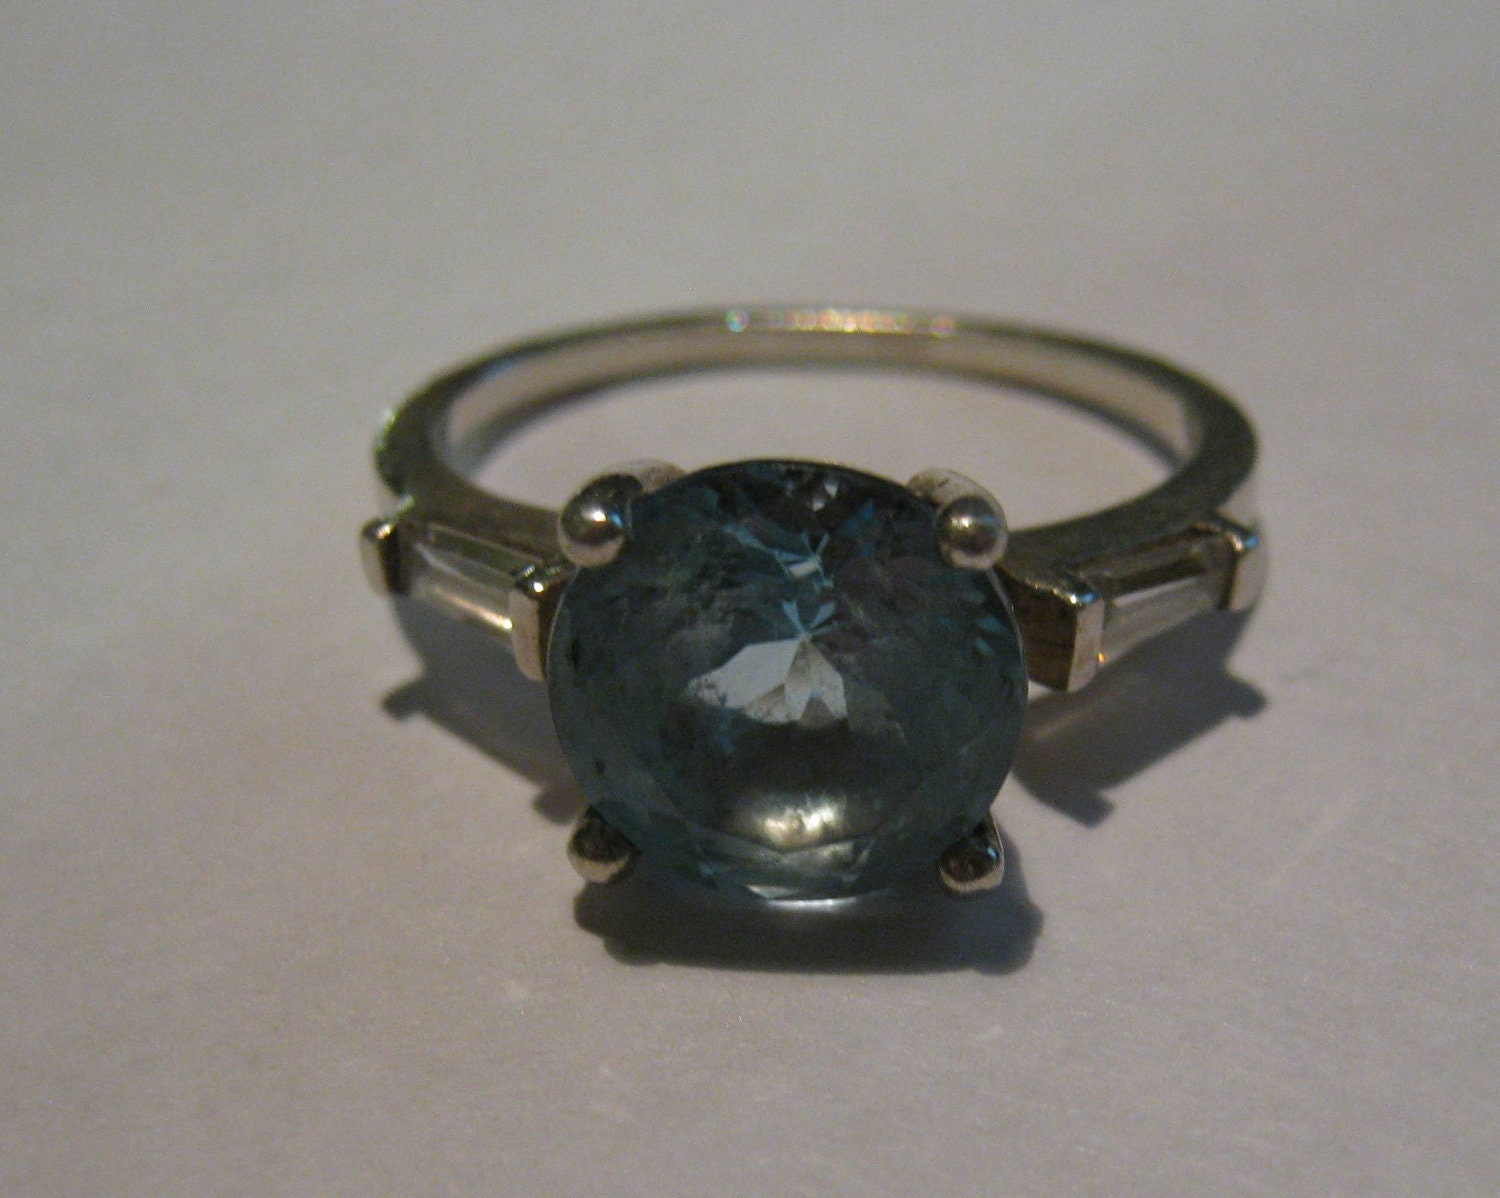 Vintage Avon Sterling Silver Ring With Blue Topaz And Bagget